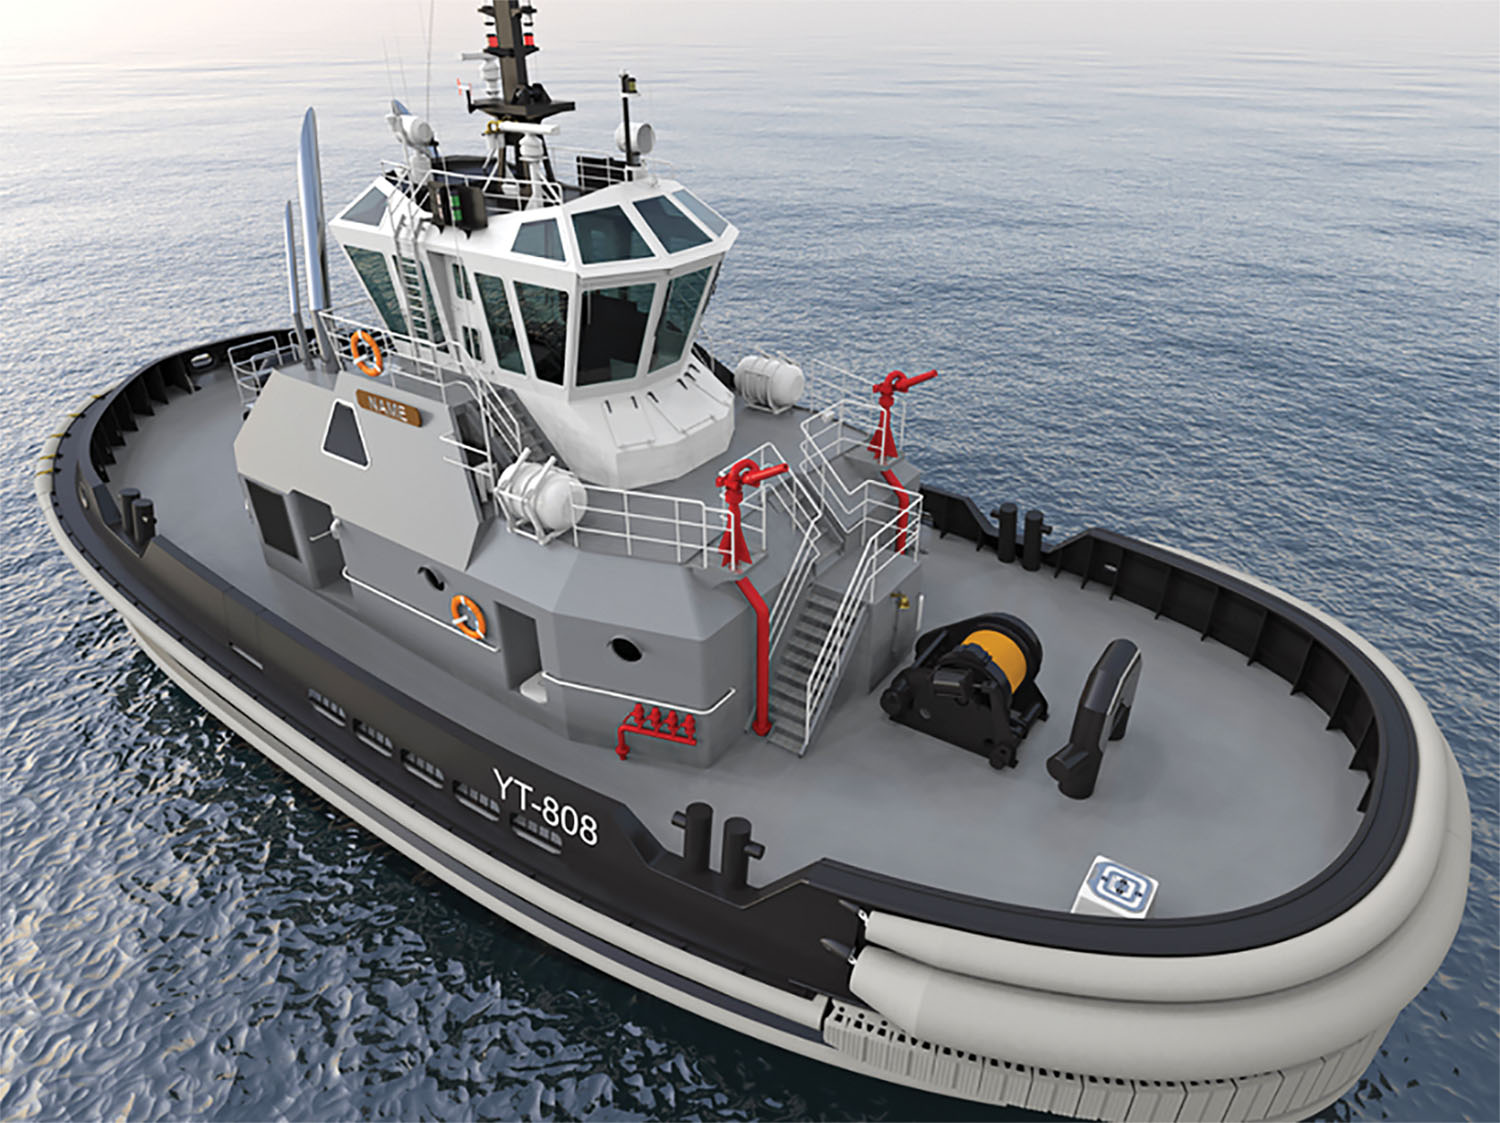 The Navy has ordered four newly designed yard tugs from Washington-based Dakota Creek Industries. They currently plan to deploy the four new tugs at United States military bases in the U.S. Pacific Northwest region and Yokosuka, Japan. (Photo courtesy of Robert Allan Ltd.)